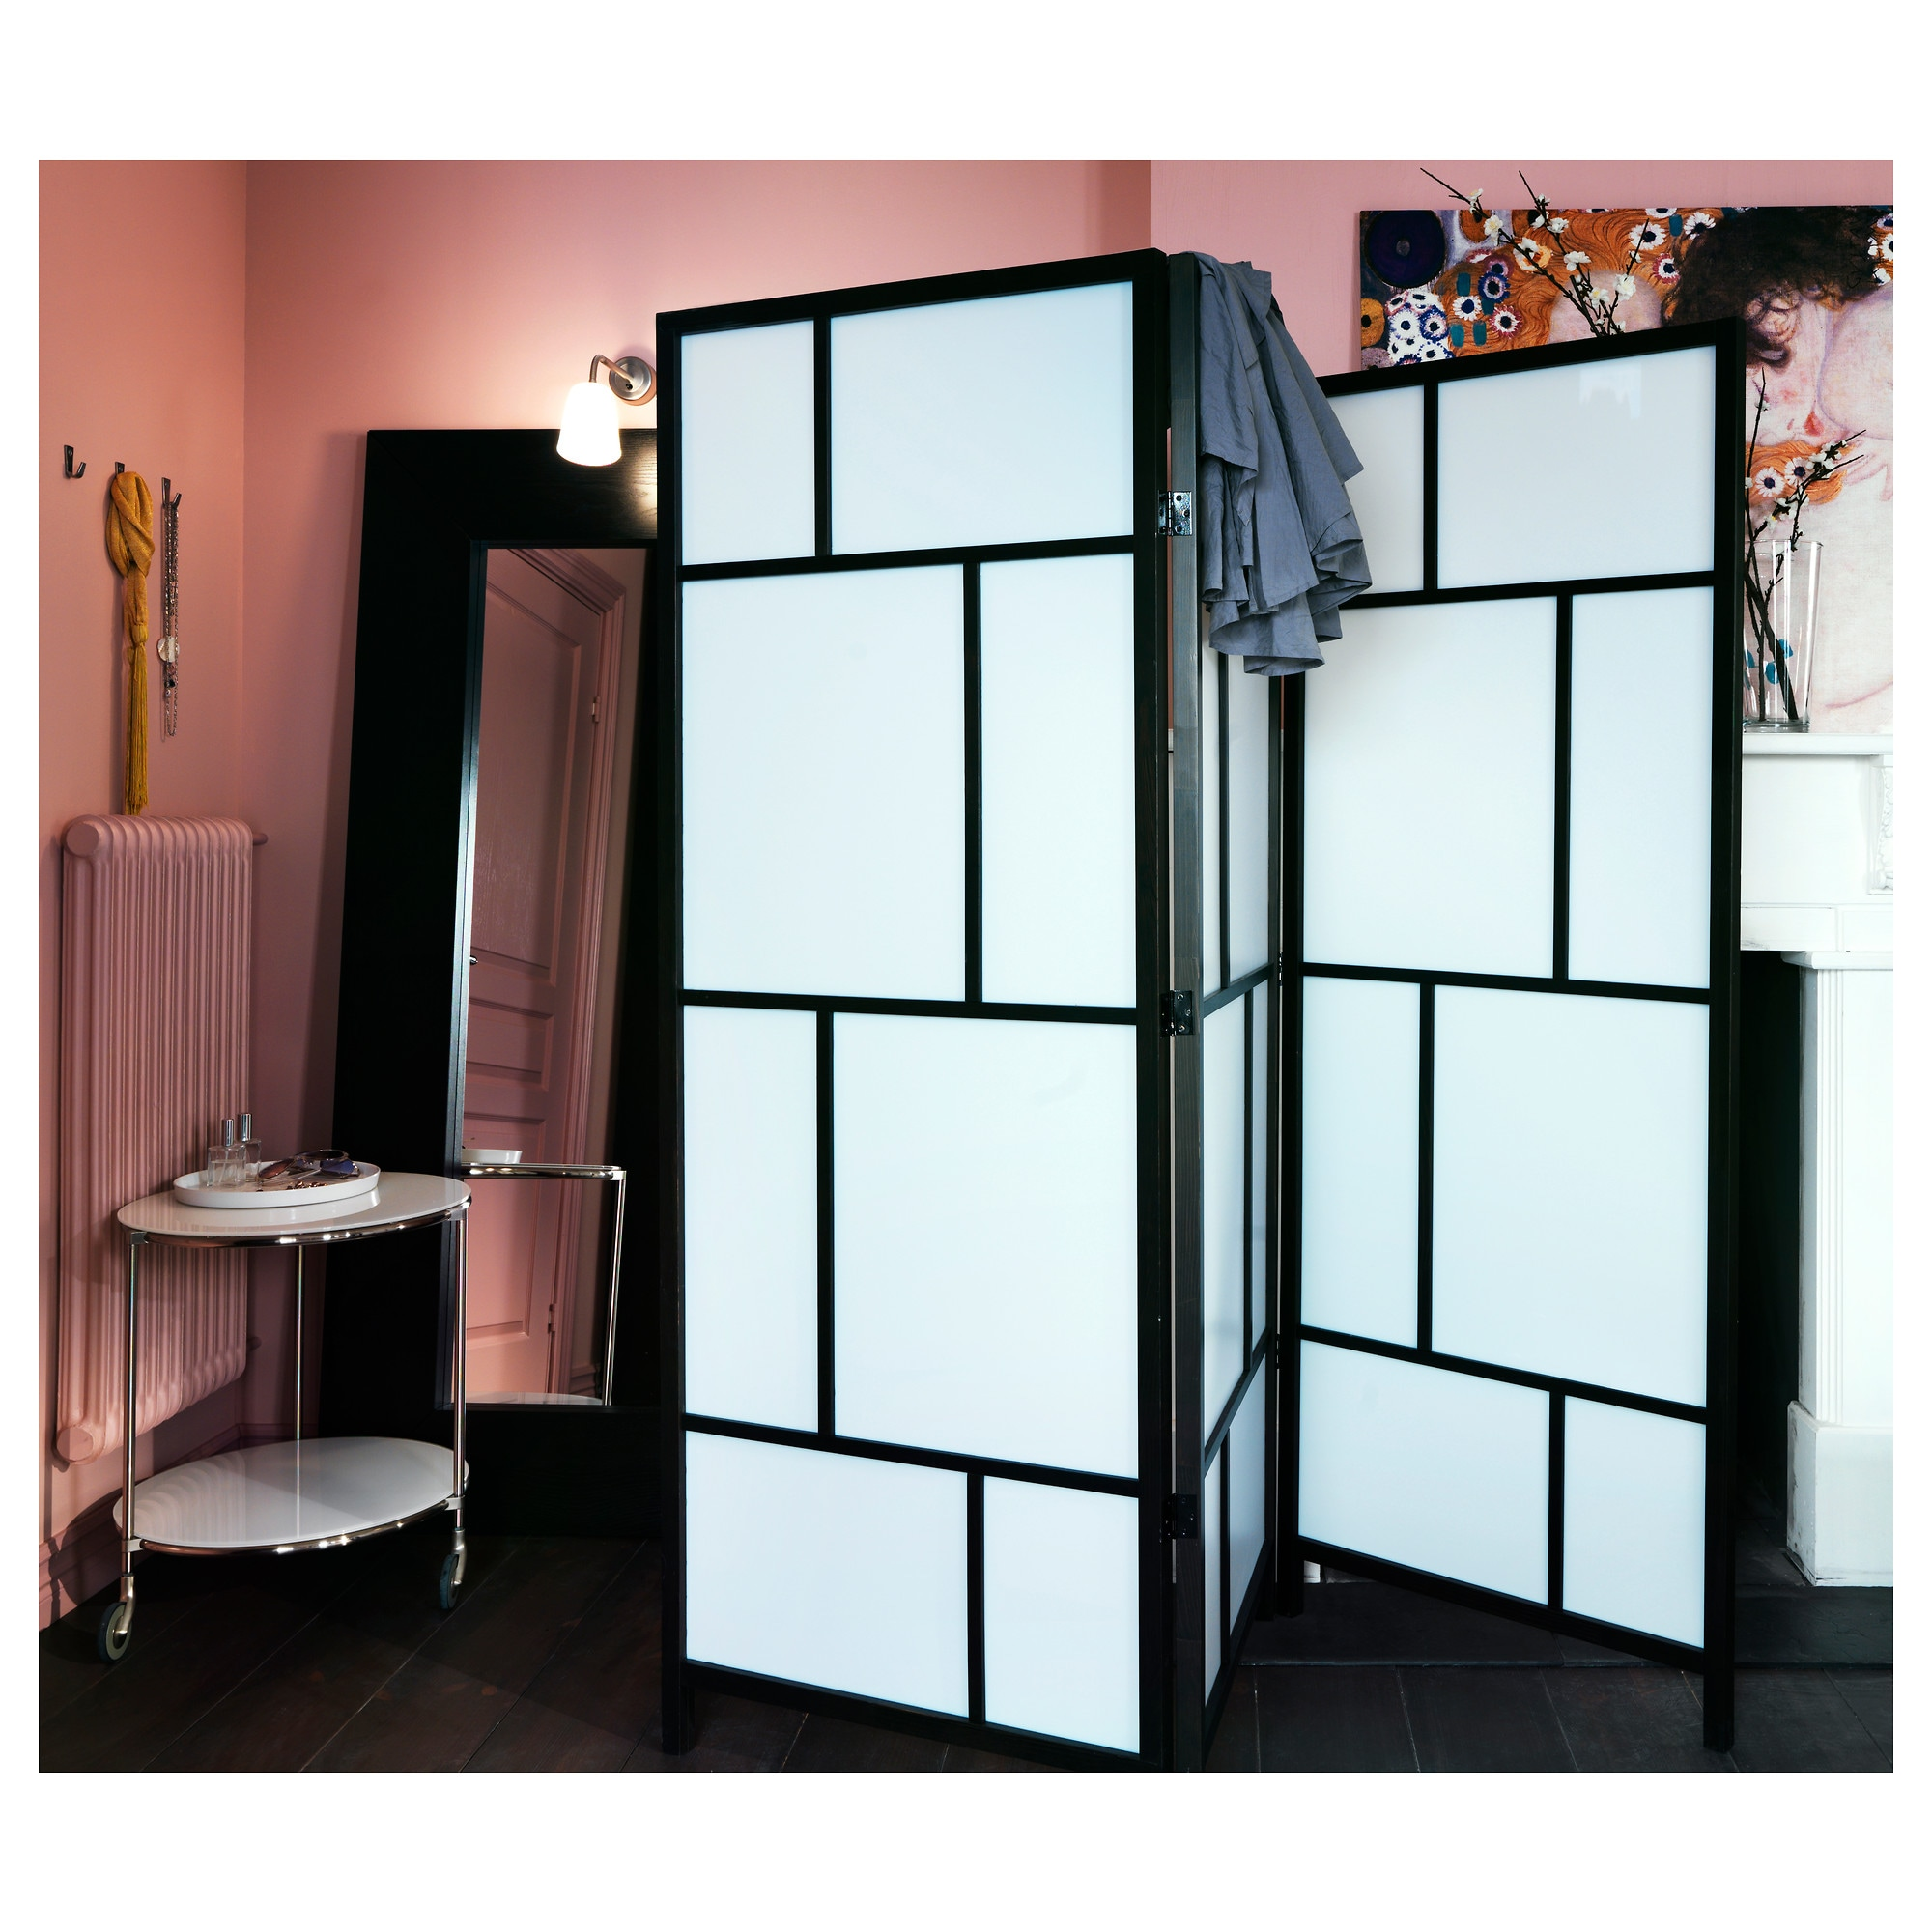 Images Of Room Dividers Delectable Risör Room Divider  Ikea Design Decoration